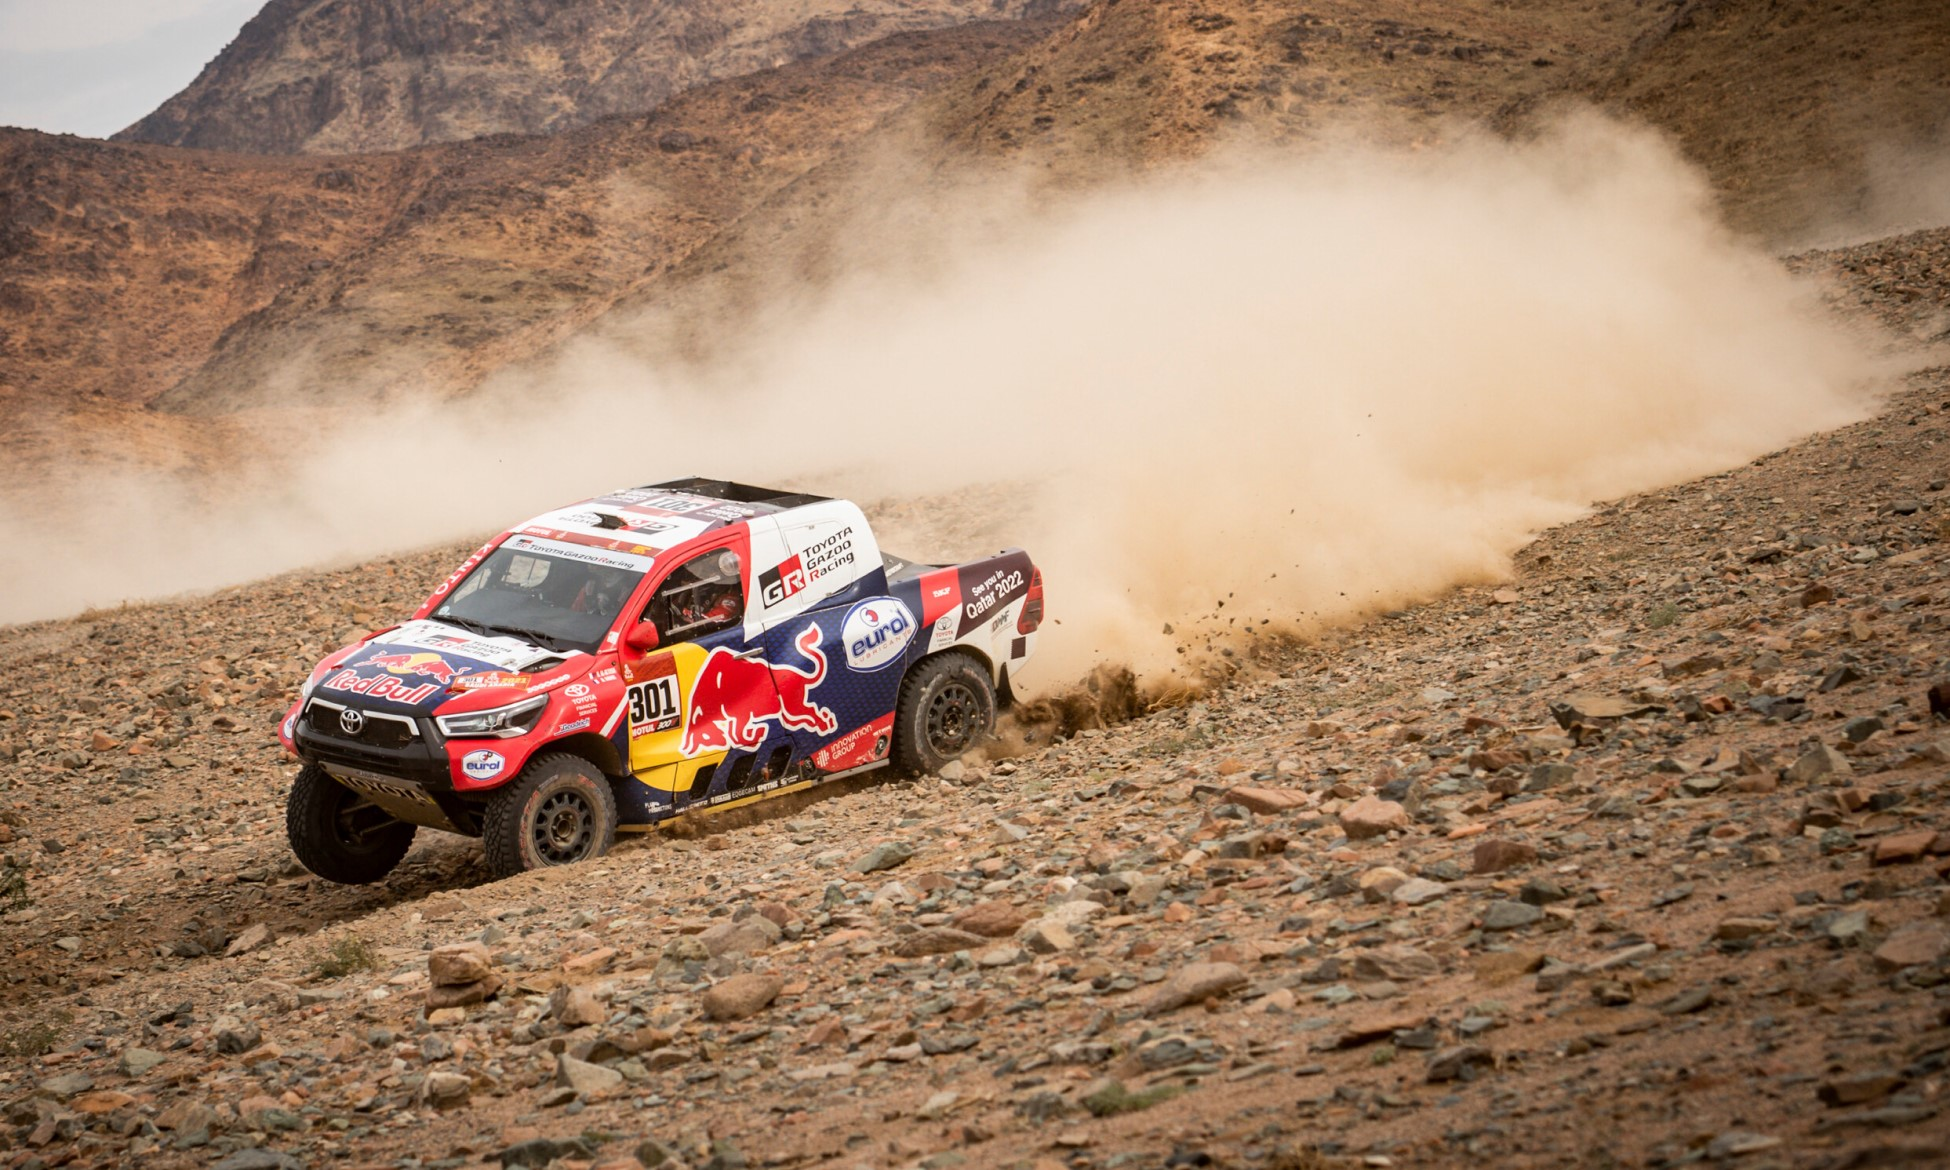 Nasser Al-Attiyah pushed hard on 2021 Dakar Stage 11